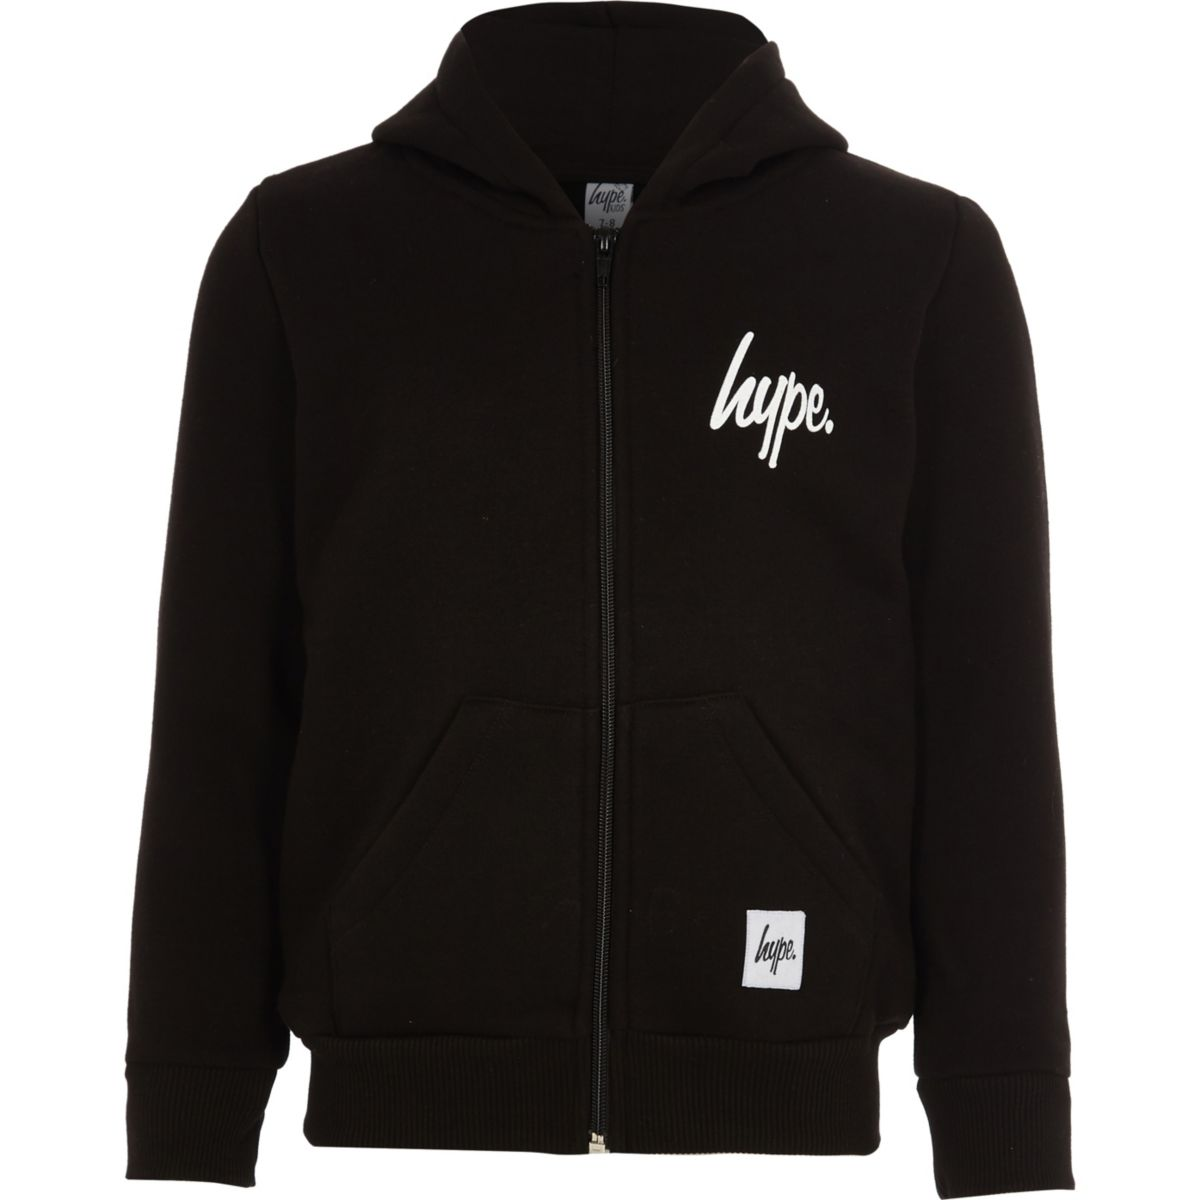 Boys black Hype zip-up hoodie